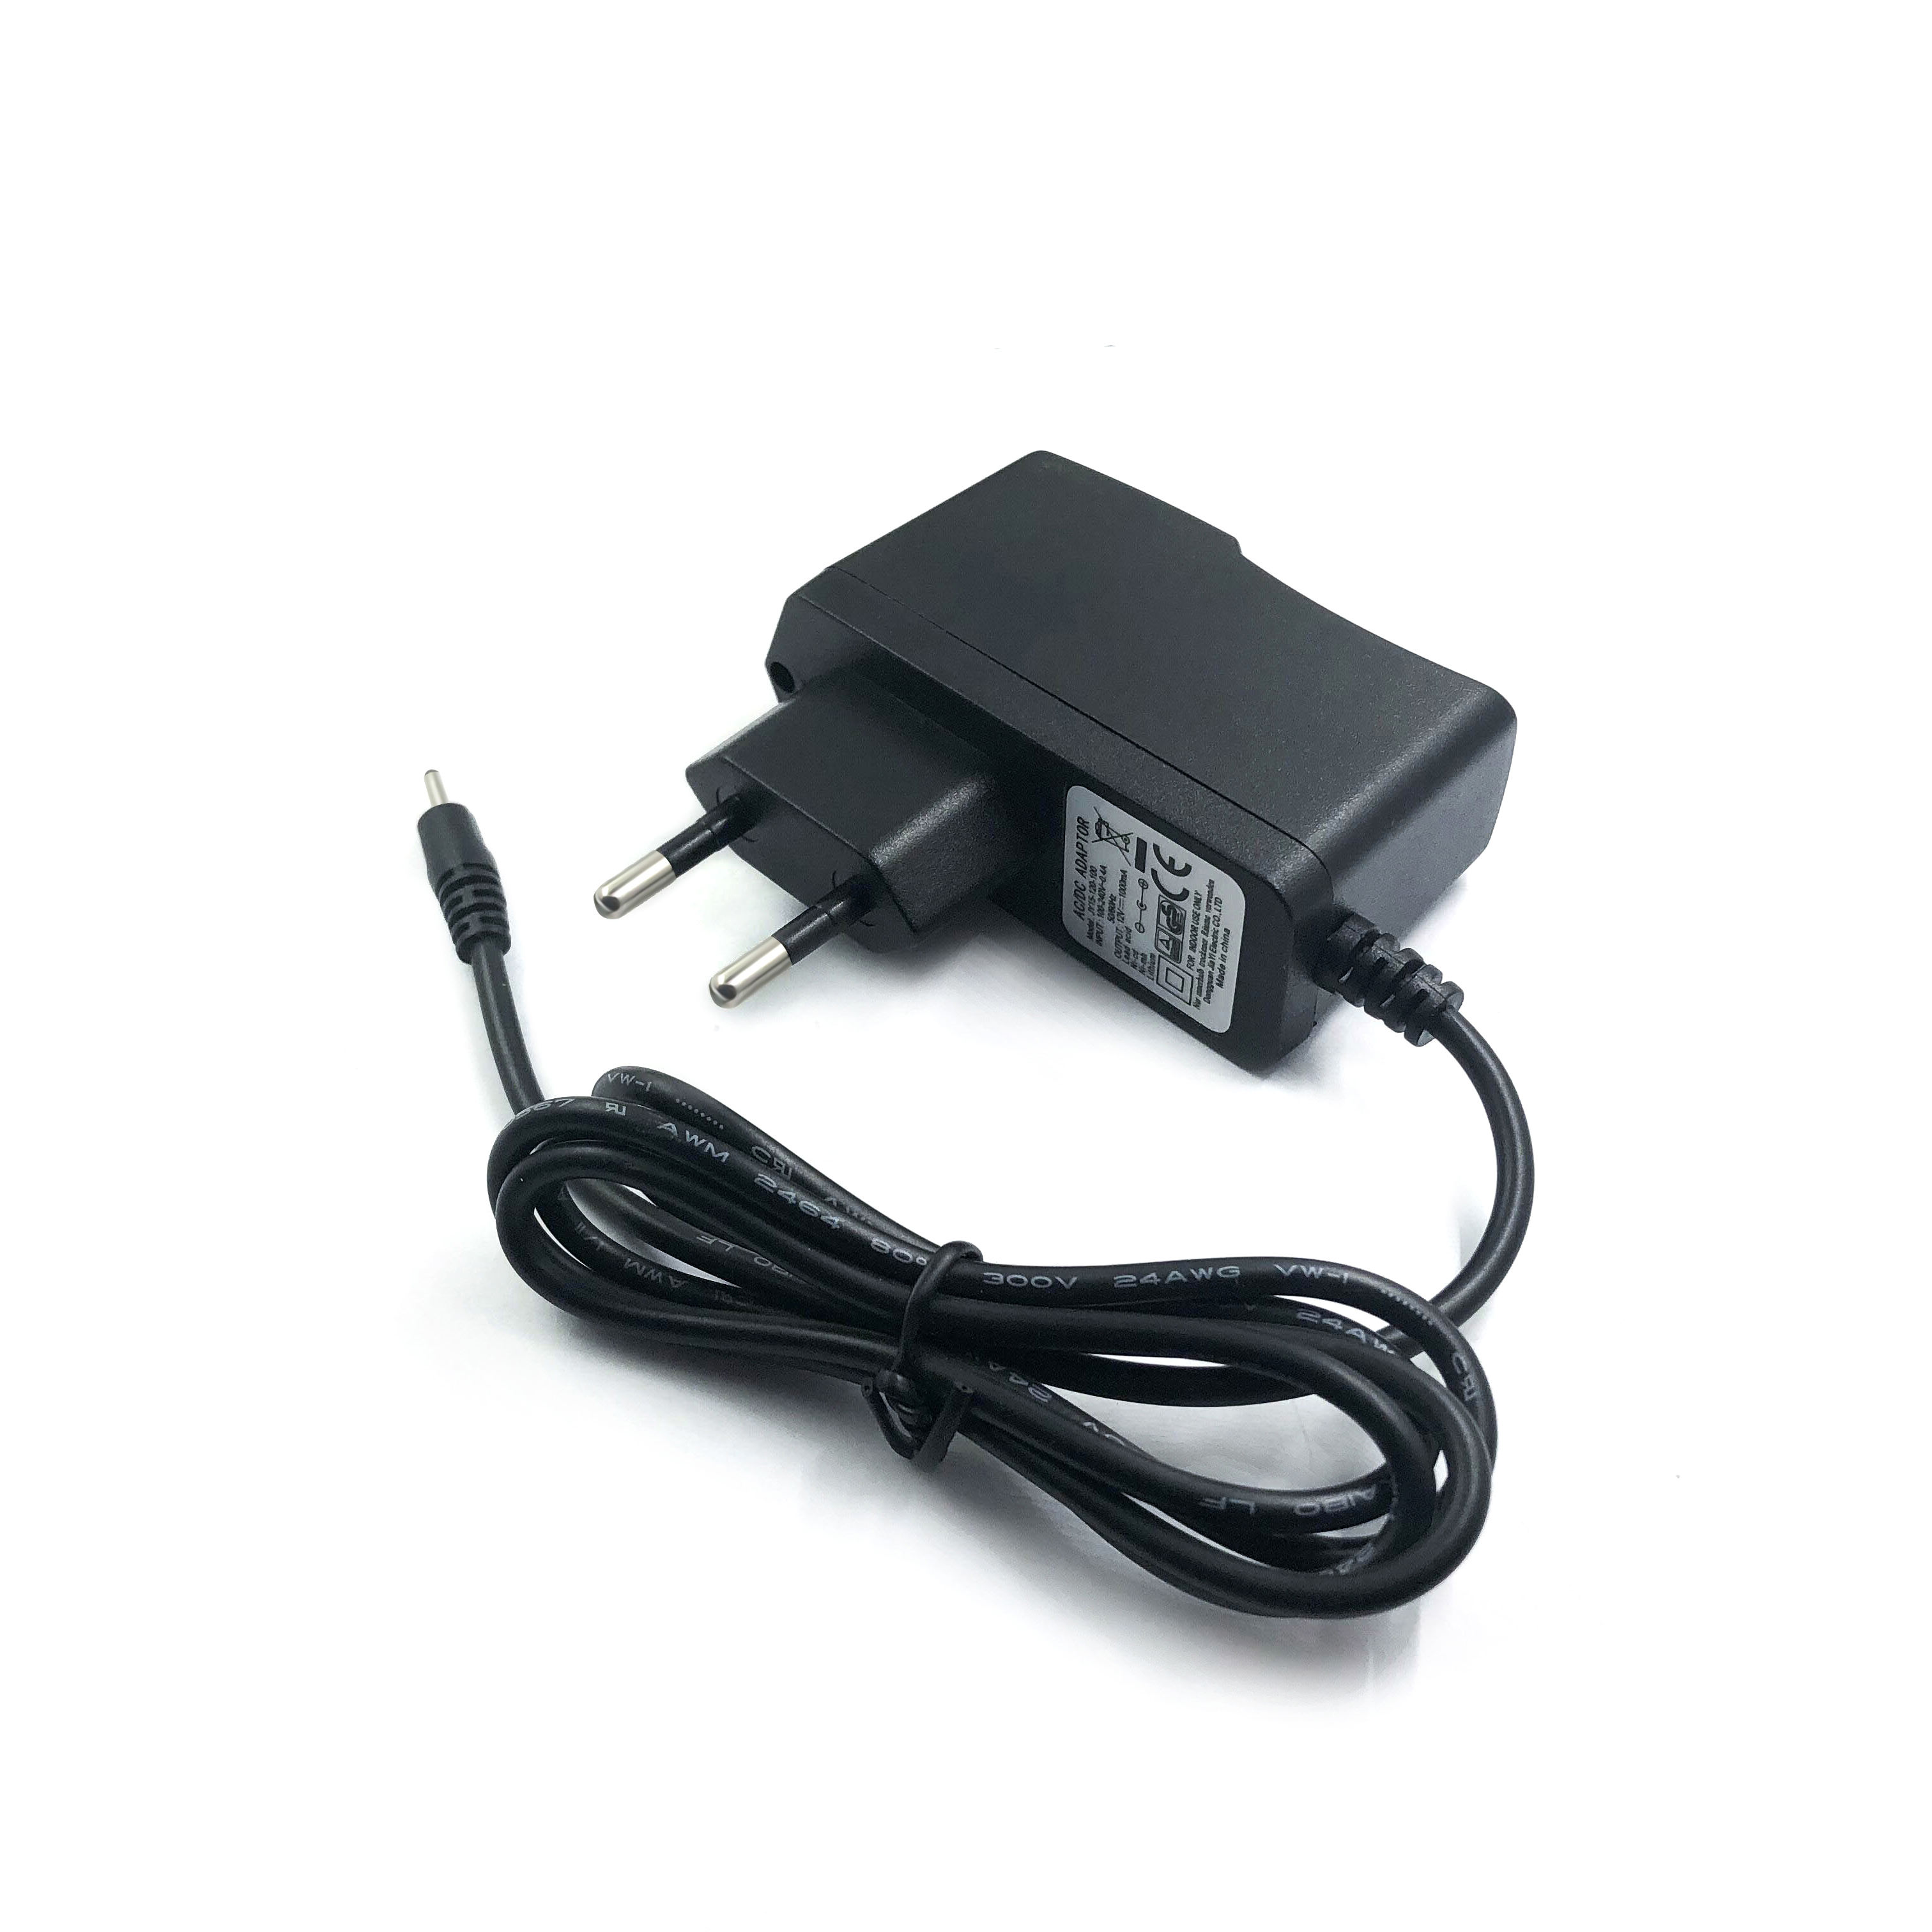 Power Supply Cord HQRP AC Adapter for D-Link DWL-2100AP DWL-7100AP DWL-G700AP DWL-G730AP Access Point DIR-100 DIR-130 Router Euro Plug Adapter